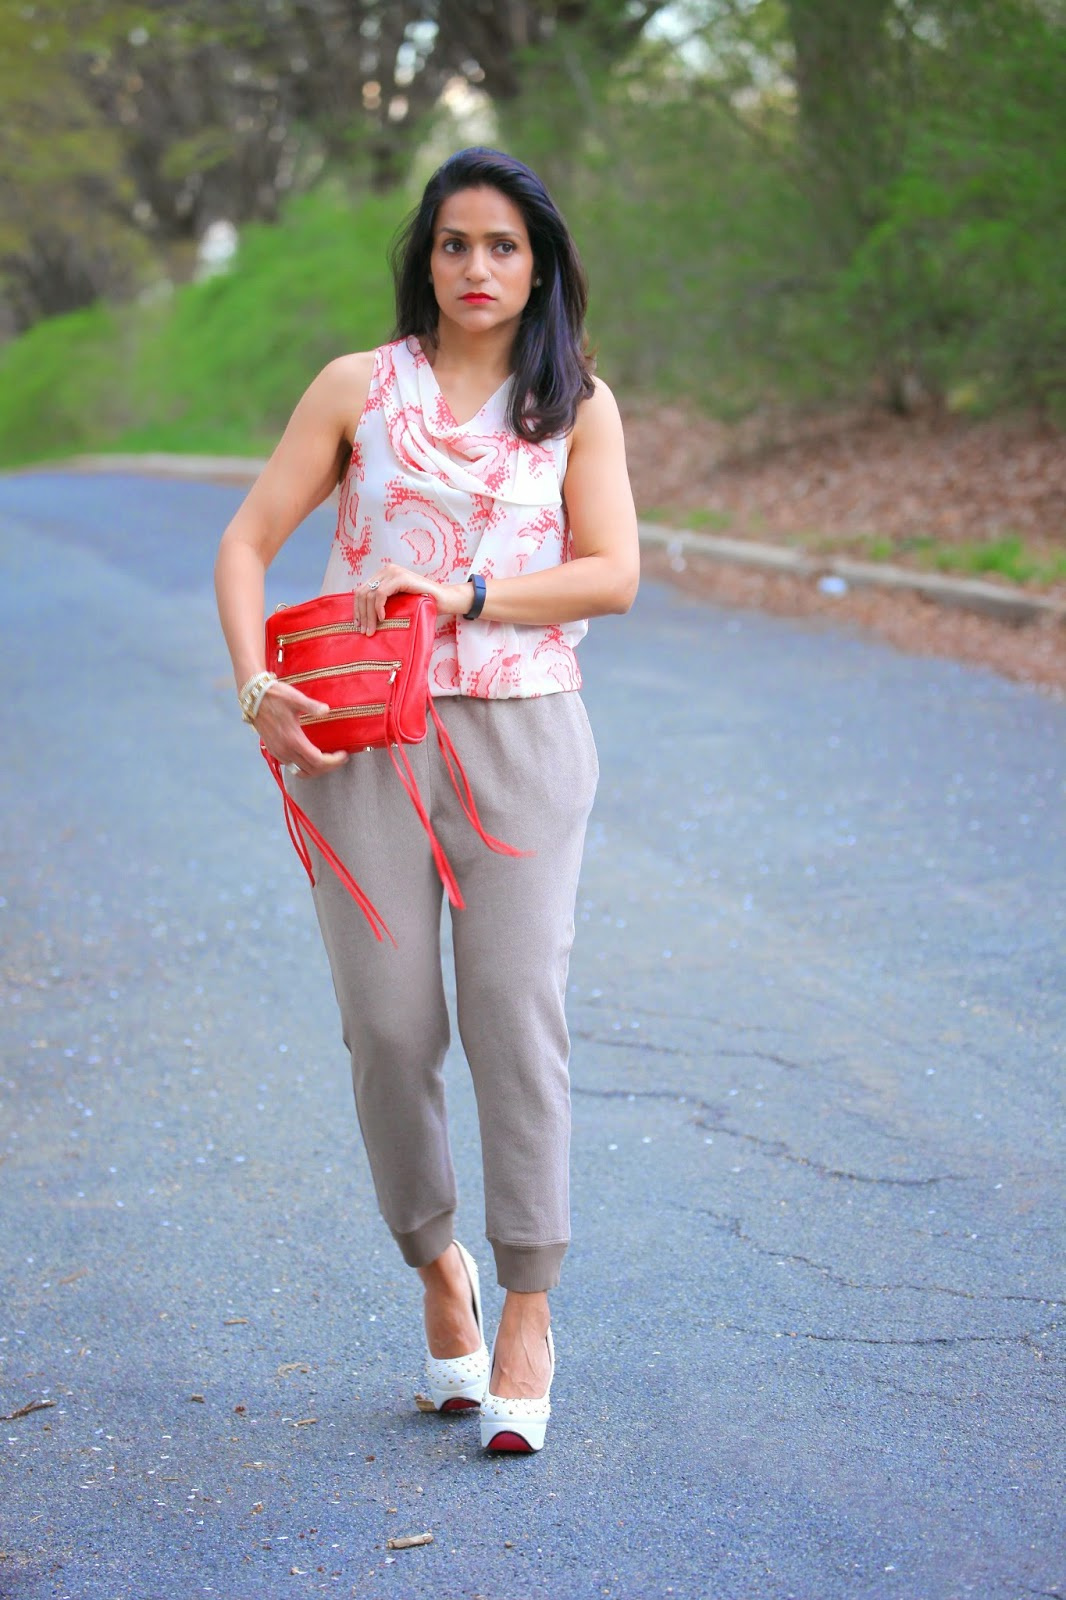 Top - DVF Tracks - Neiman Marcus  Shoes - ASOS  Bag - Rebecca Minkoff  Bracelet - Banana Republic Tanvii.com